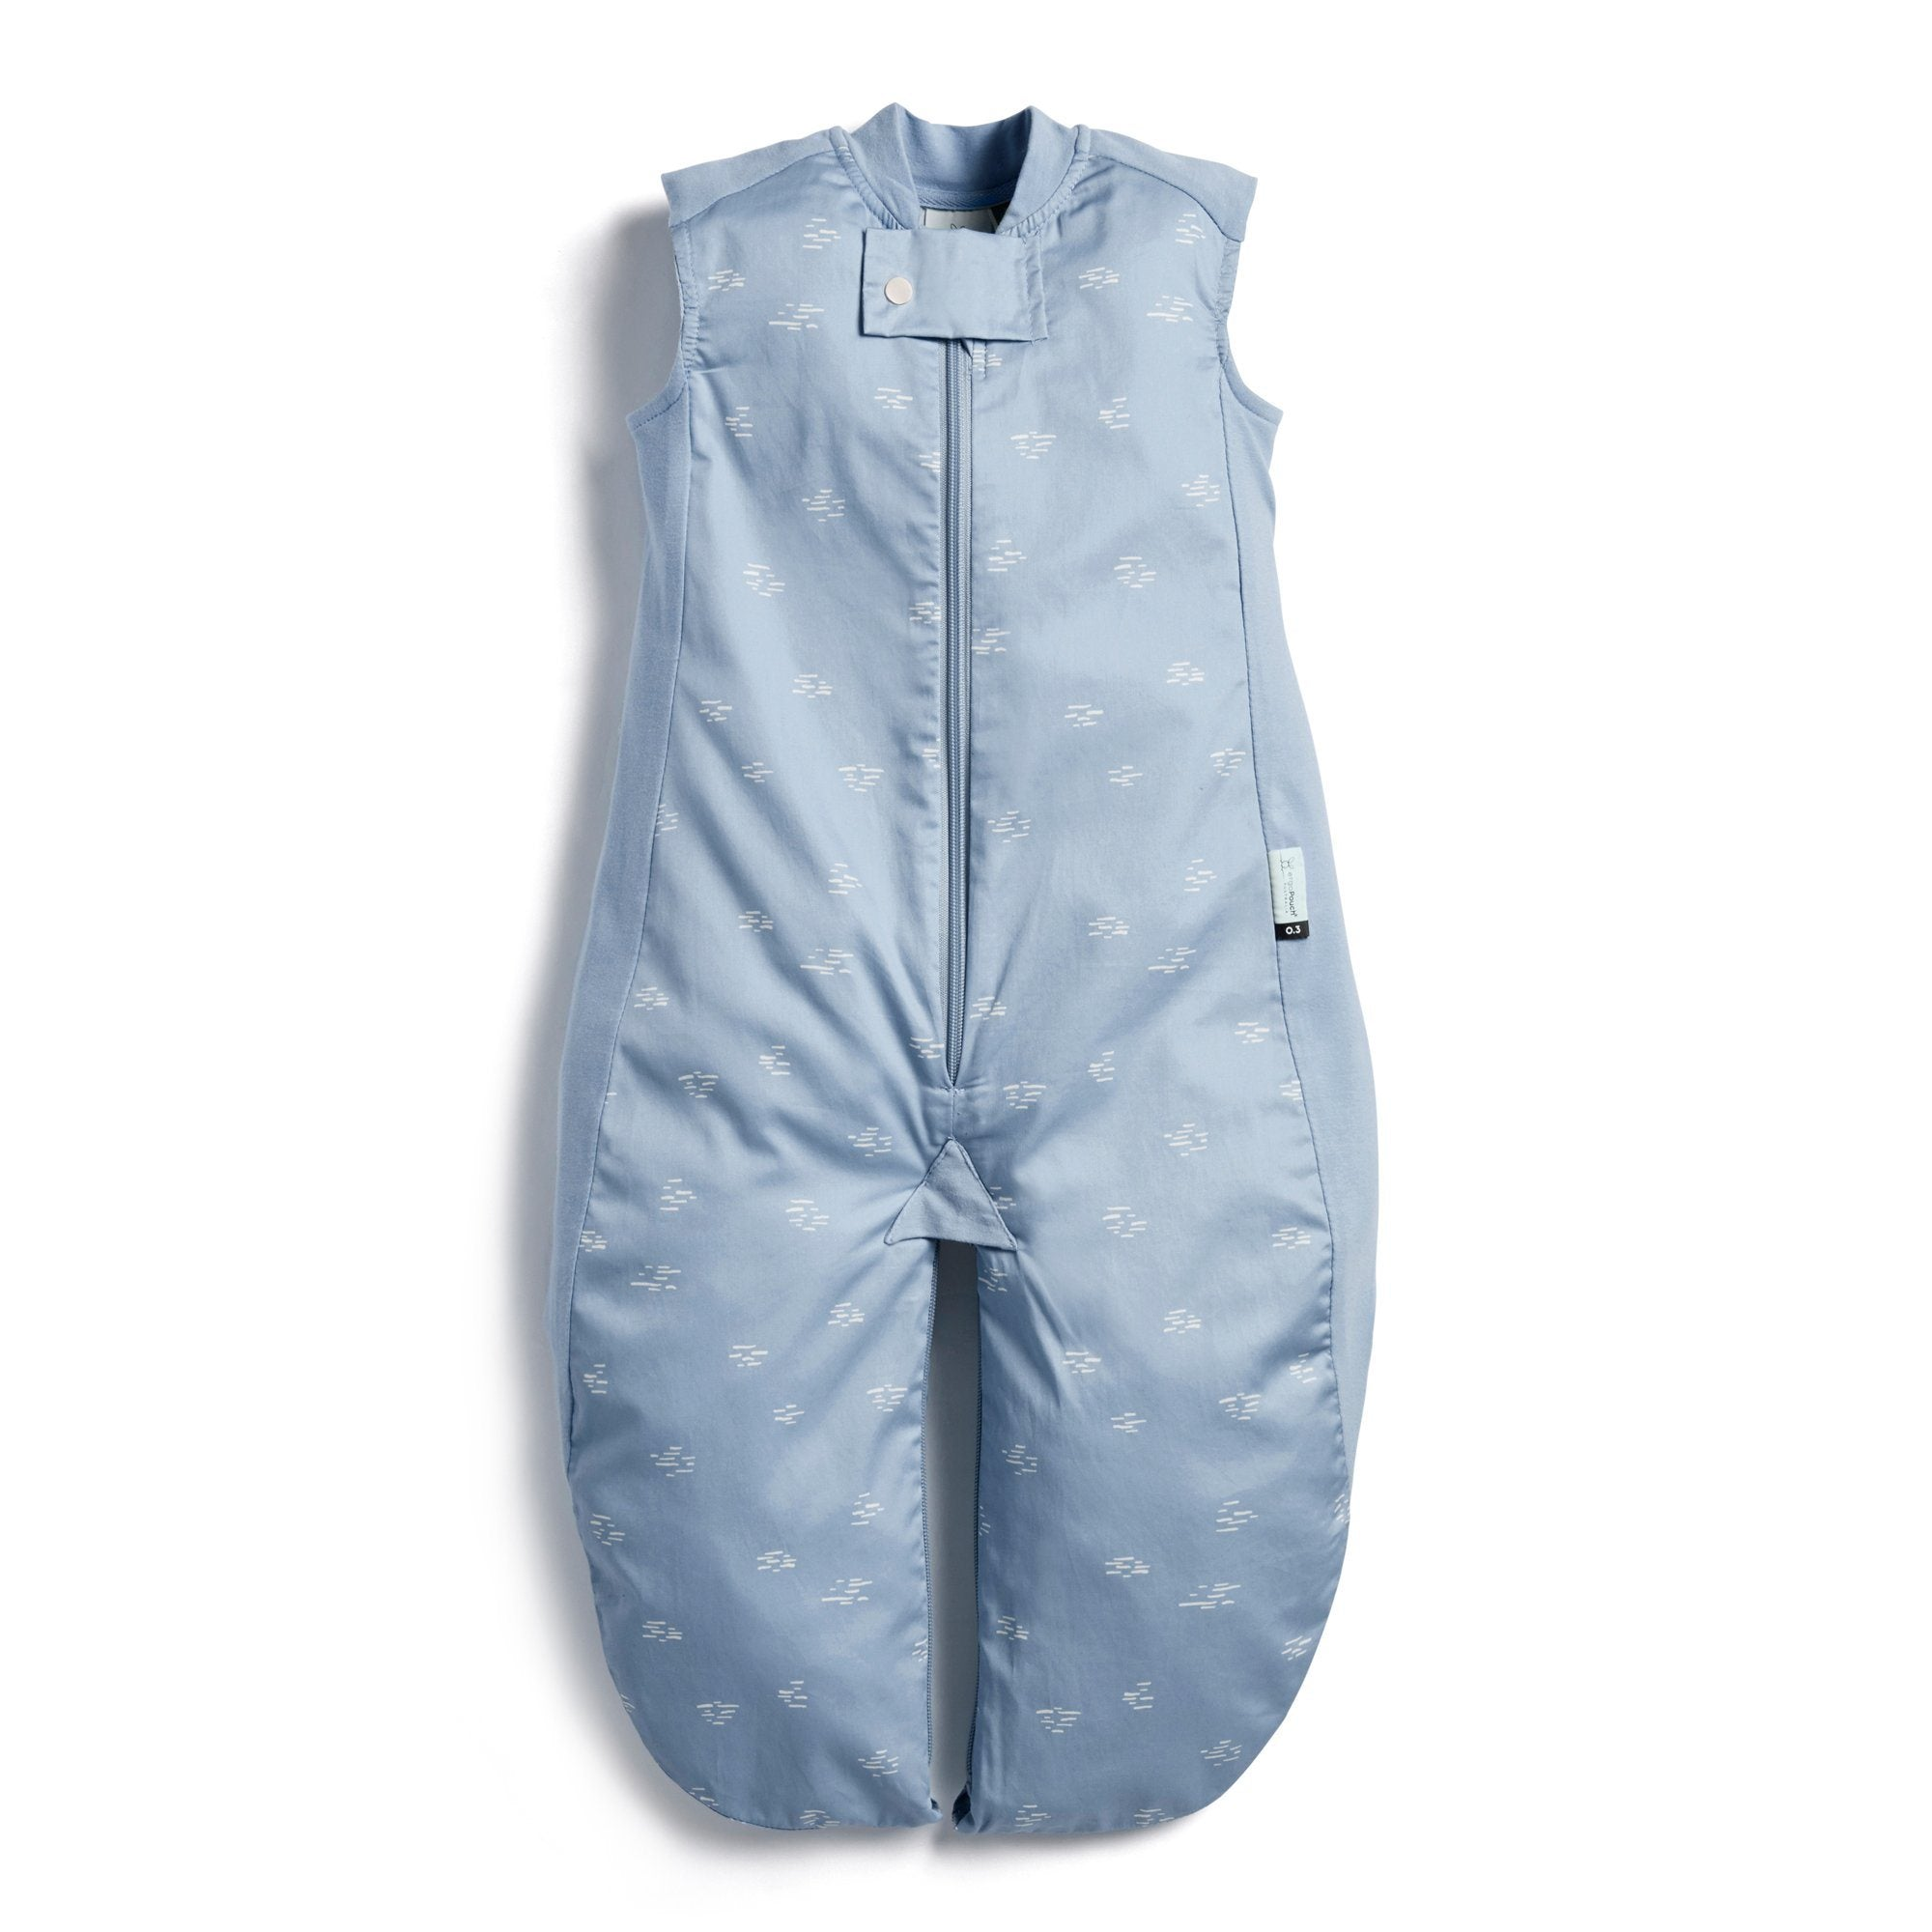 Sleep Suit Bag 0.3 tog (Ripple)